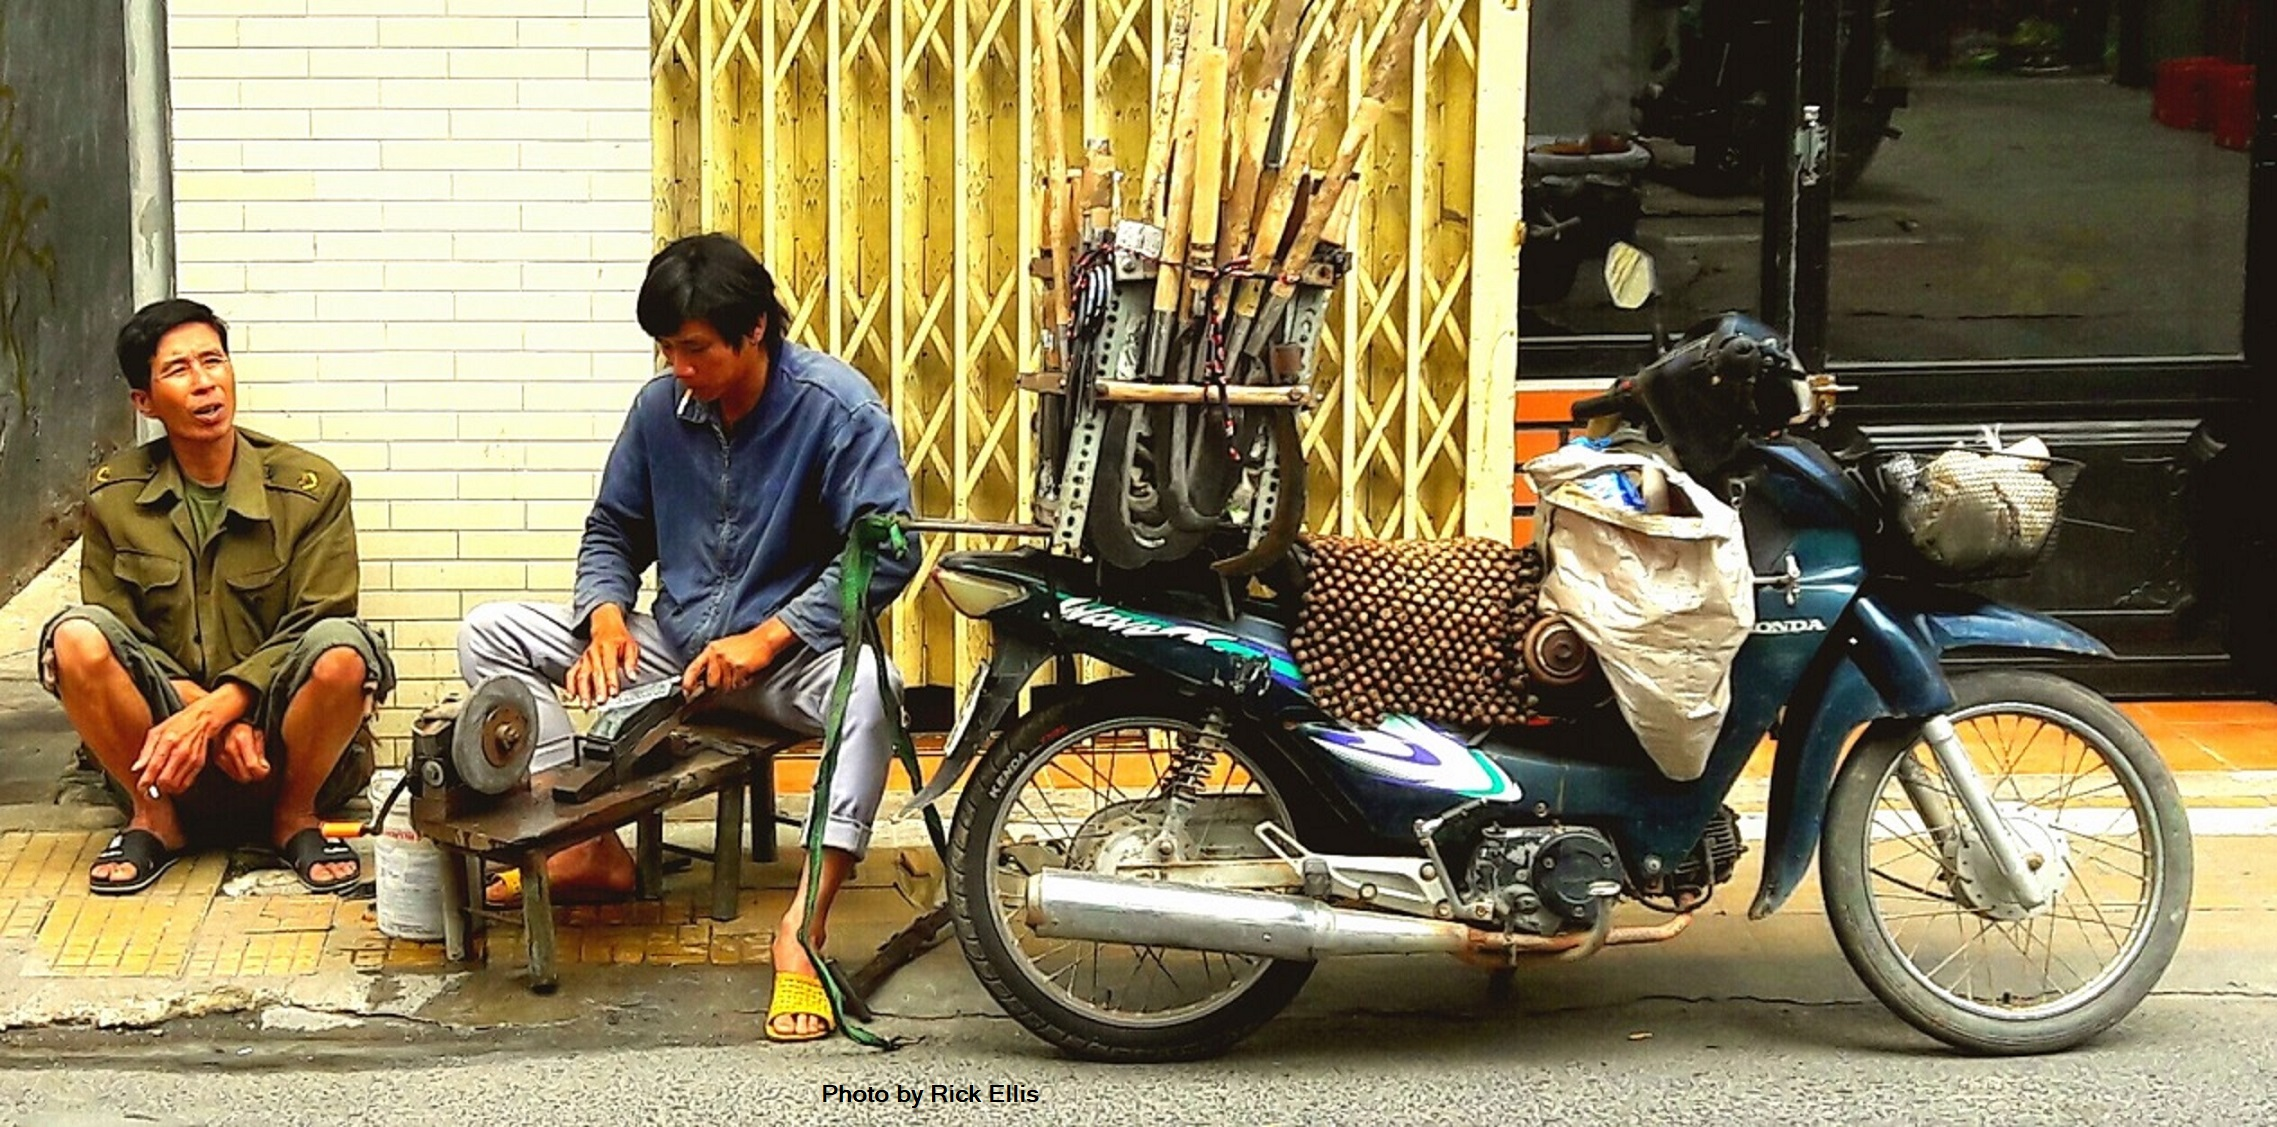 Businesses on wheels in Vietnam